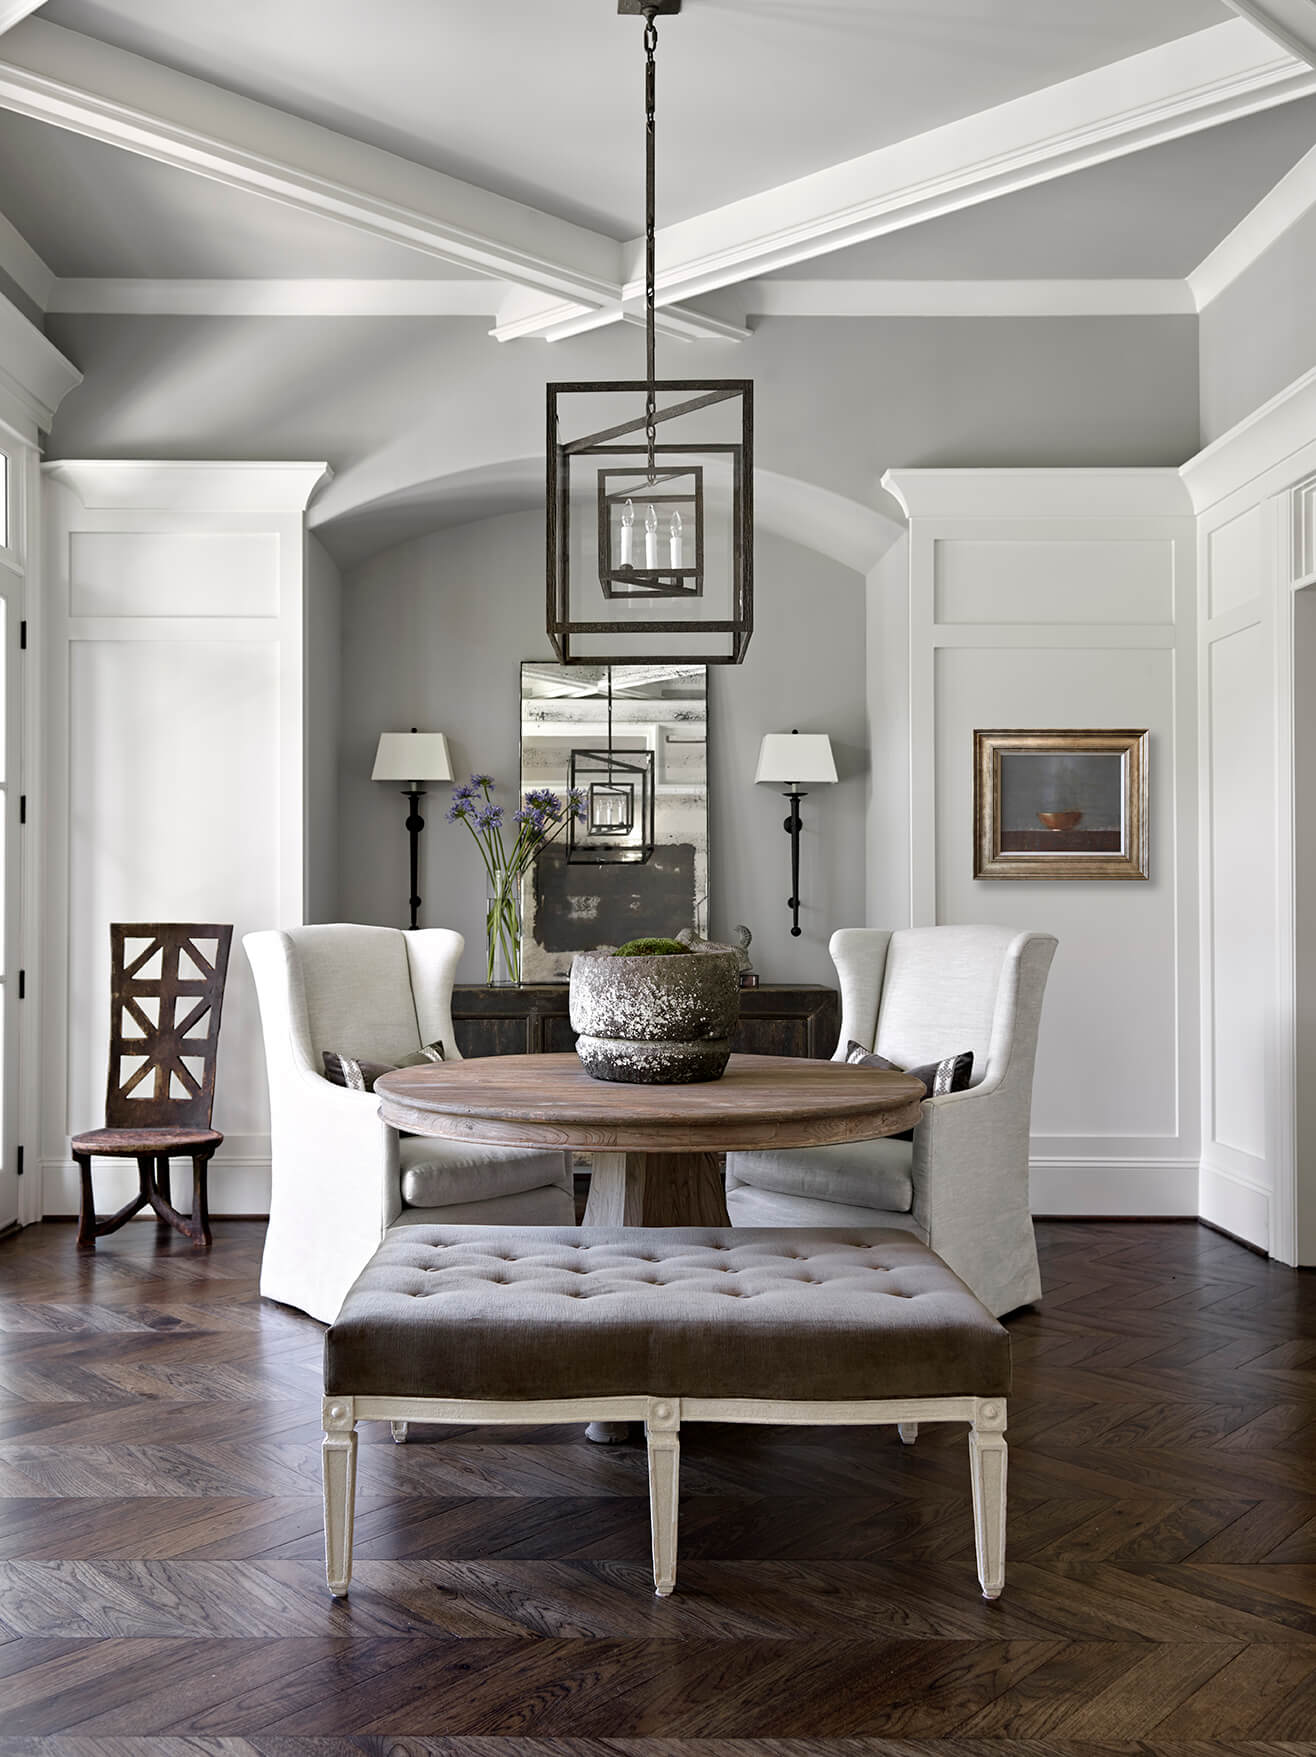 Small dining area with dark floors, gray upolstered bench and painted white walls - Rustic Contemporary Bureau Interior Design Nashville TN